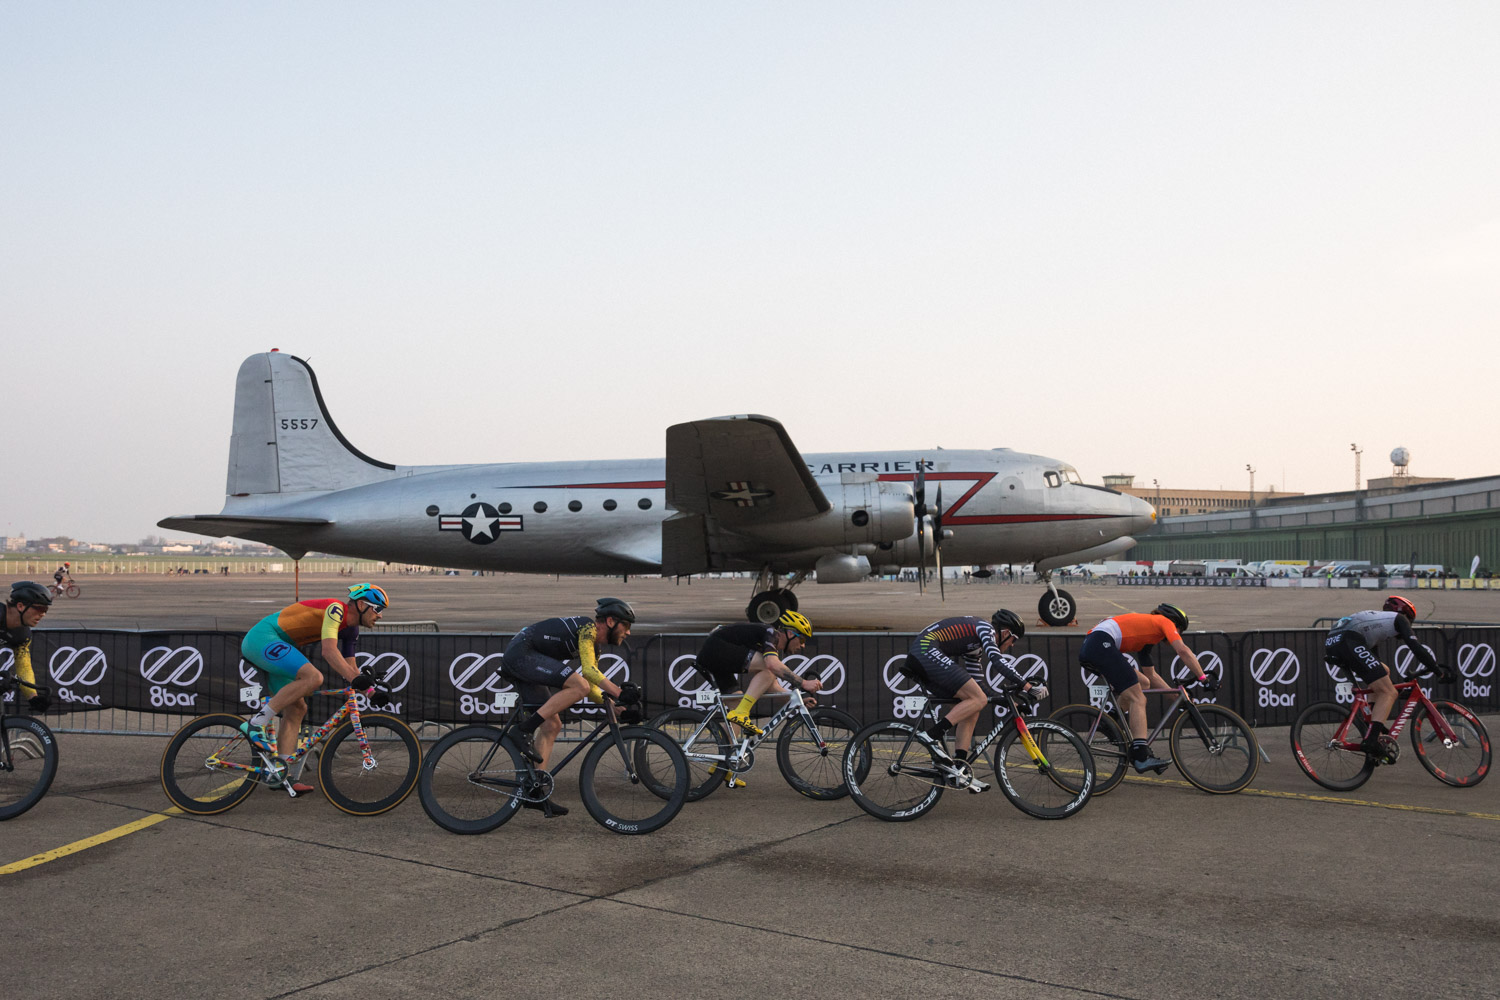 Picture of cyclists taking a long left turn during the 8bar crit 2018, a race for brakeless fixed gear bikes. The bikes in general are colorful, just as the cycling kits worn by the riders. The picture shows the bikes from the profile, riders go from the left of the picture to the right. In the background is a vintage silver airplane with a red line in form of Z painted on it. The clear sky occupies half of the picture.